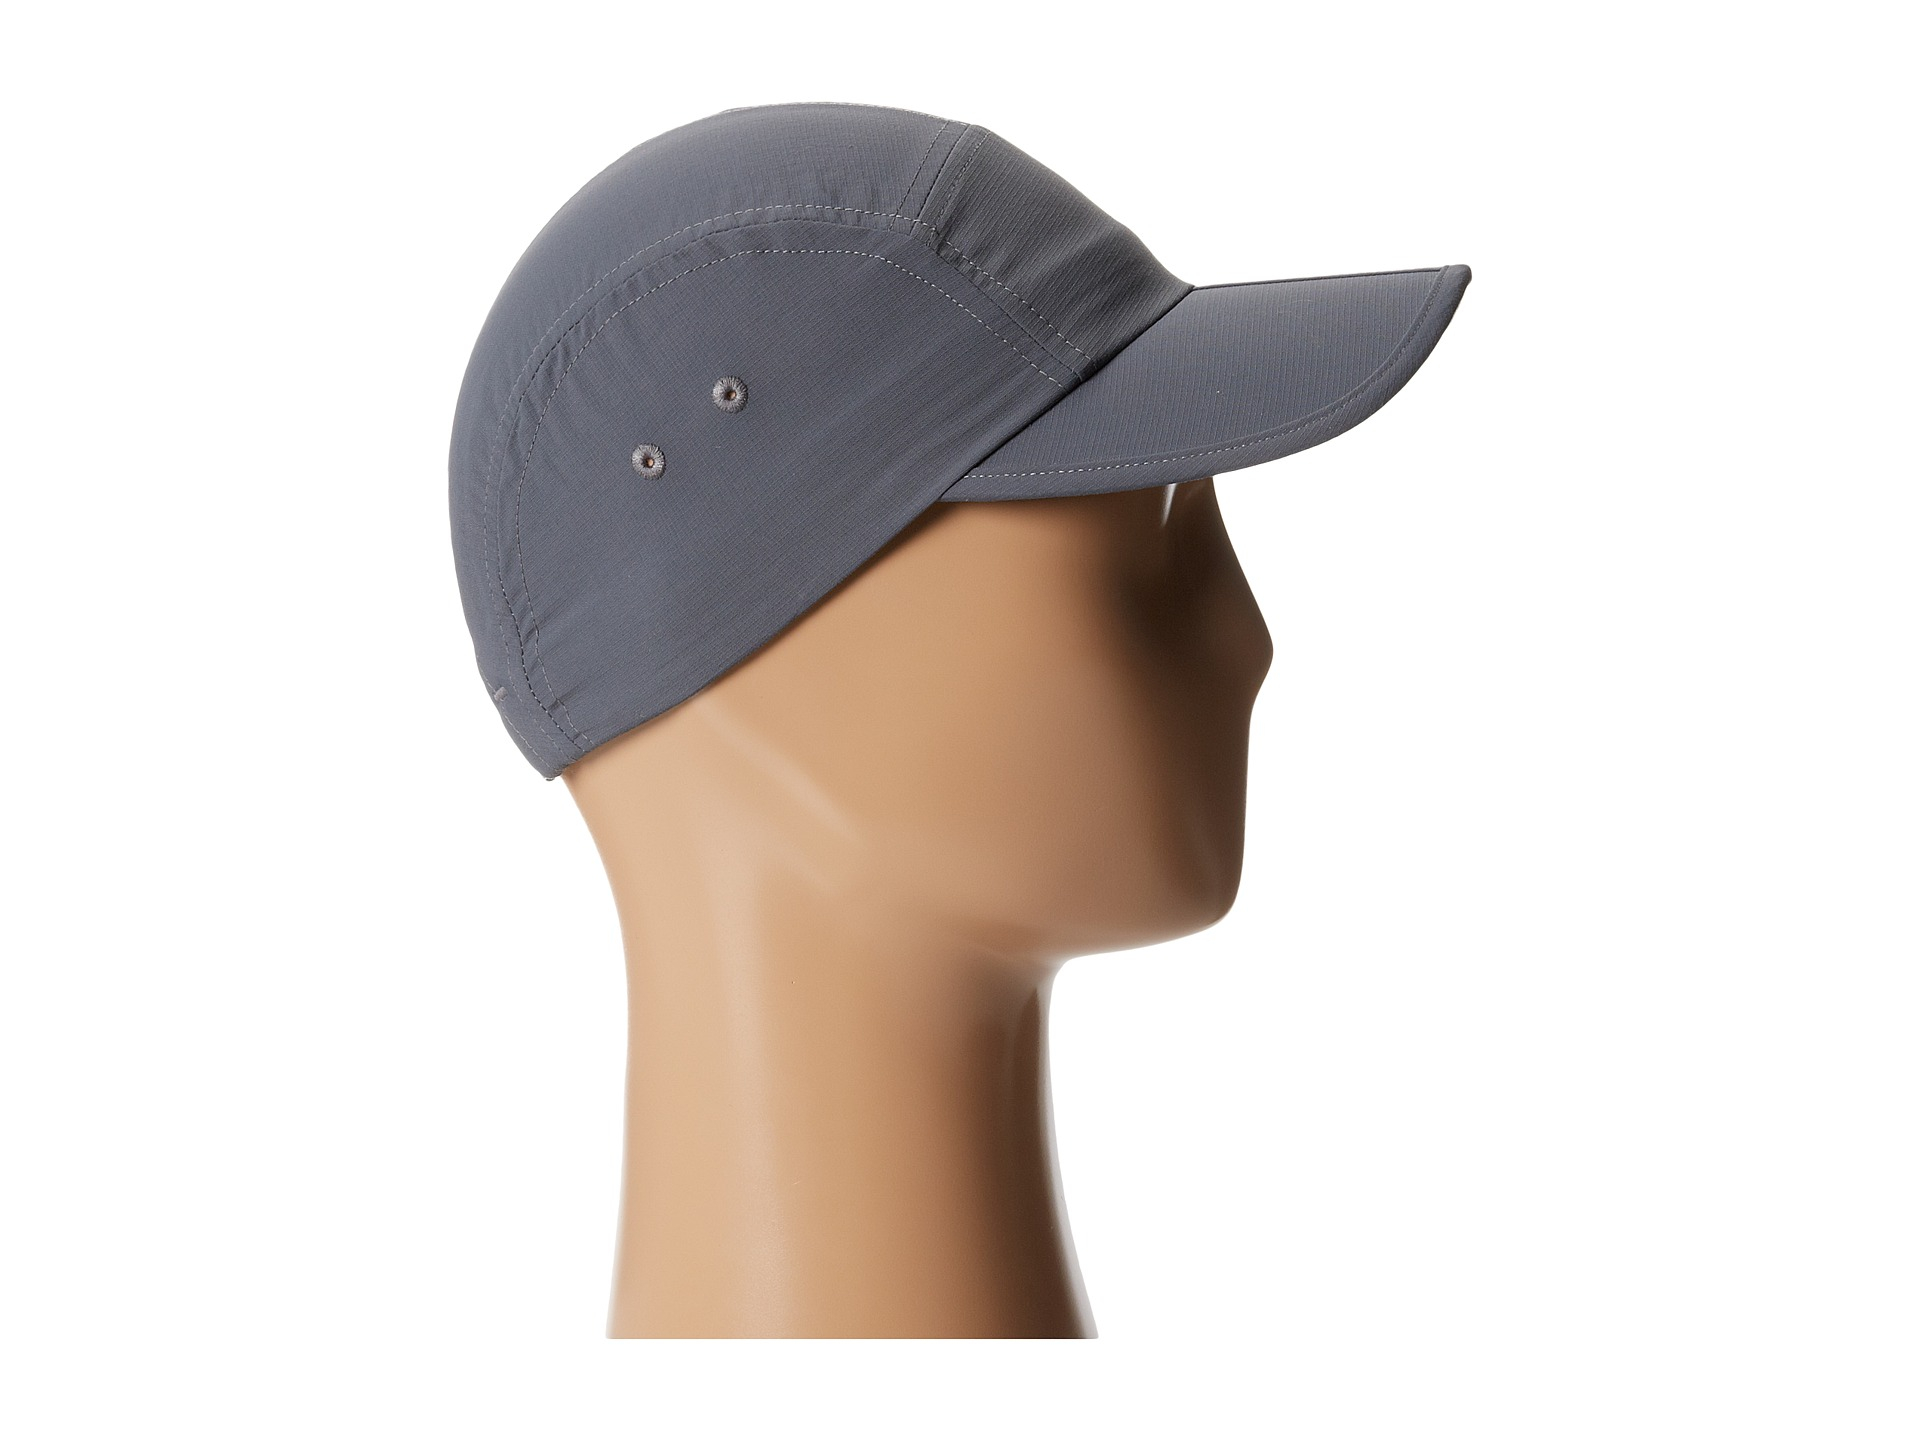 Lyst - The North Face Horizon Folding Bill Cap in Gray f4e5ab14aabd